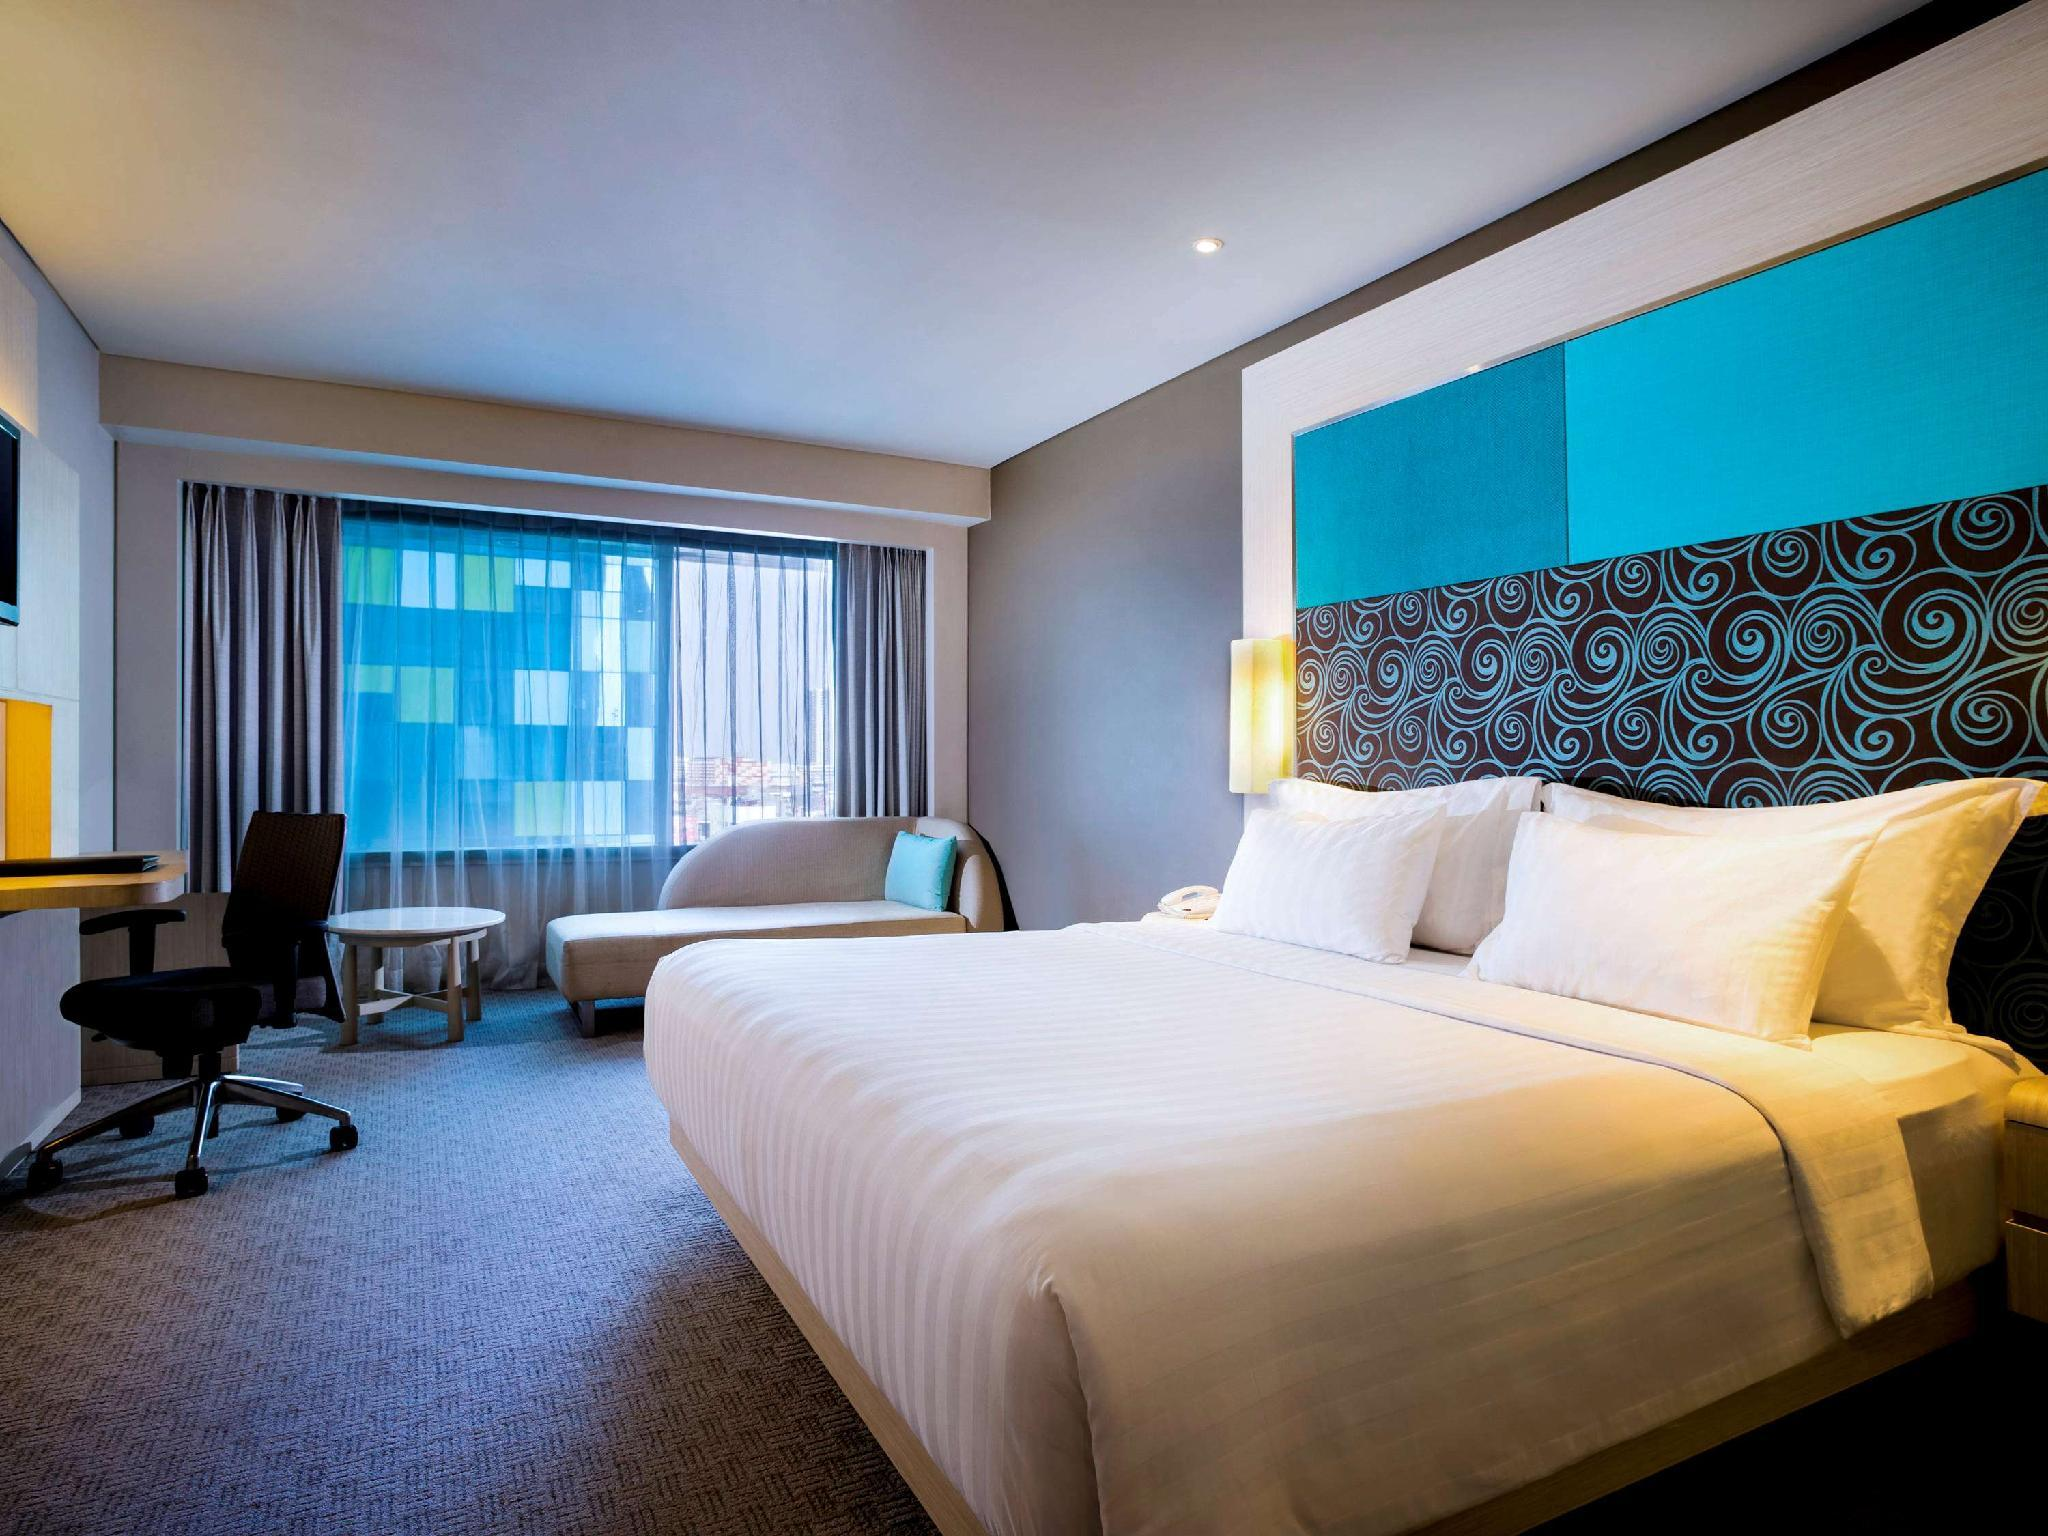 Book Grand Mercure Jakarta Harmoni Hotel Indonesia 2019 Prices From A 63